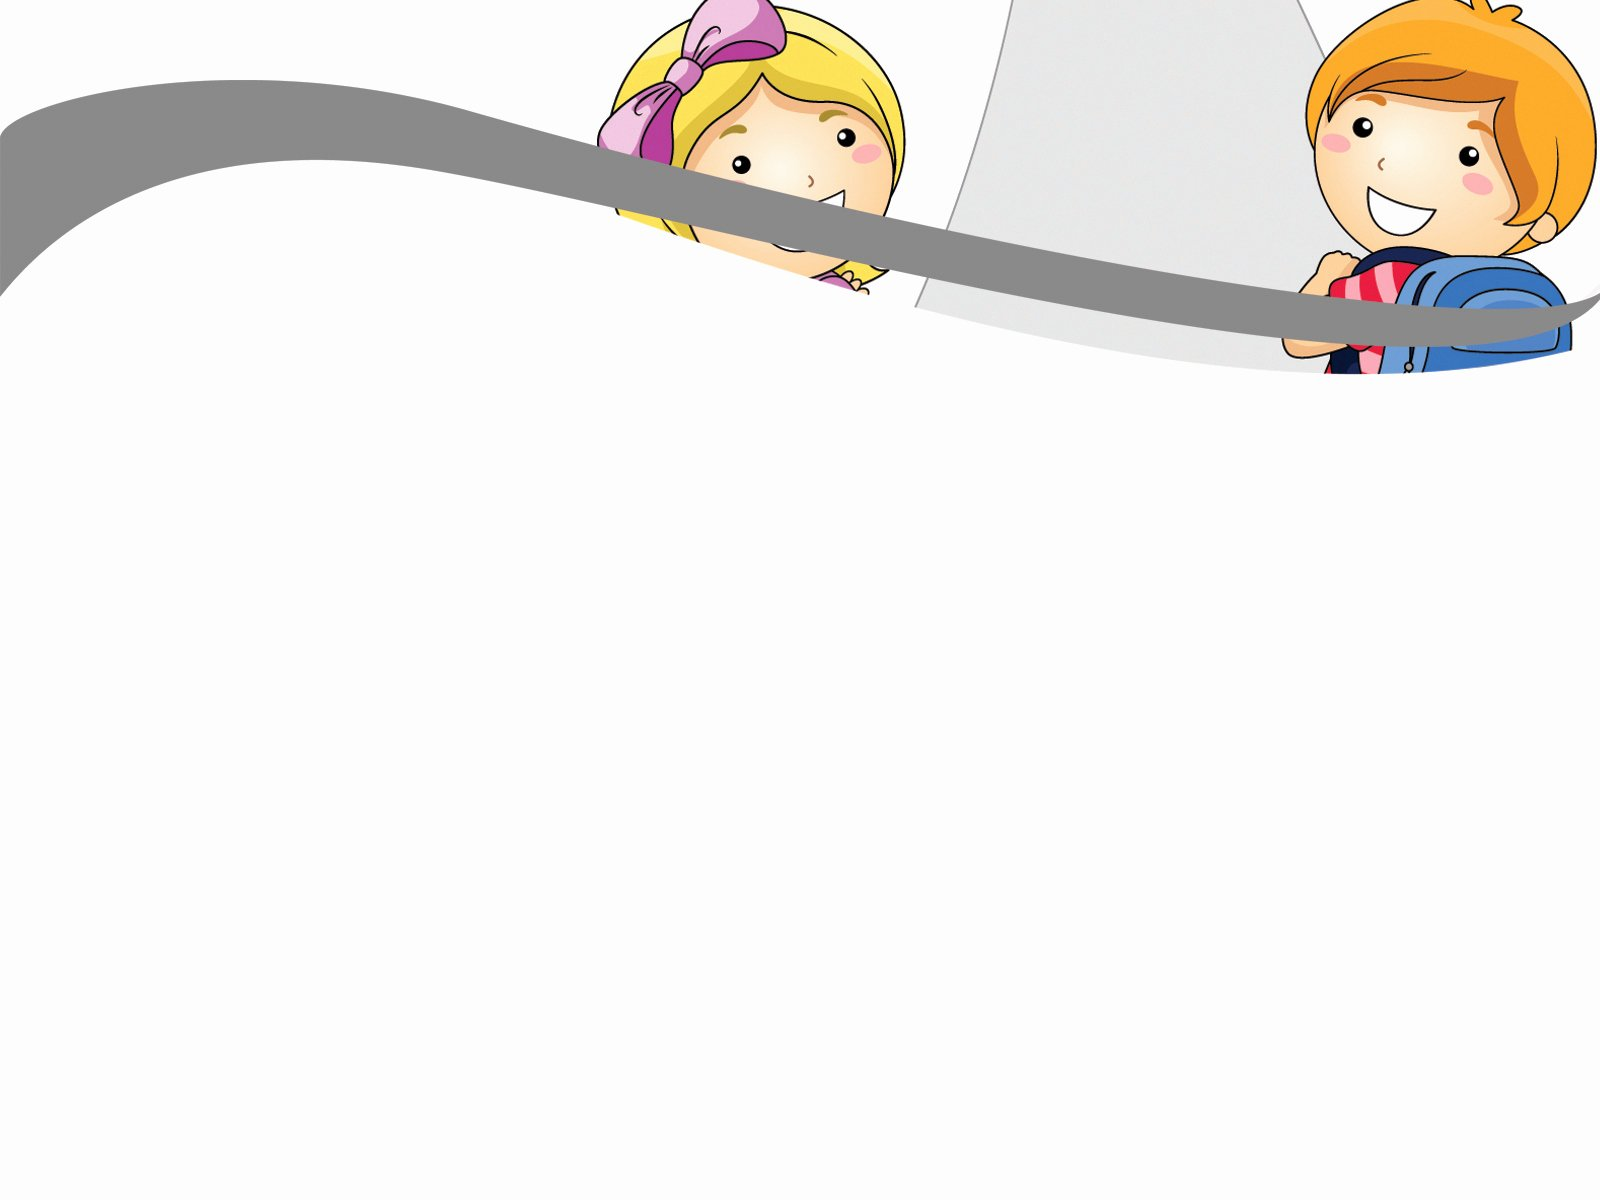 Free Powerpoint Templates for Kids New Children Education at School Powerpoint Templates Car